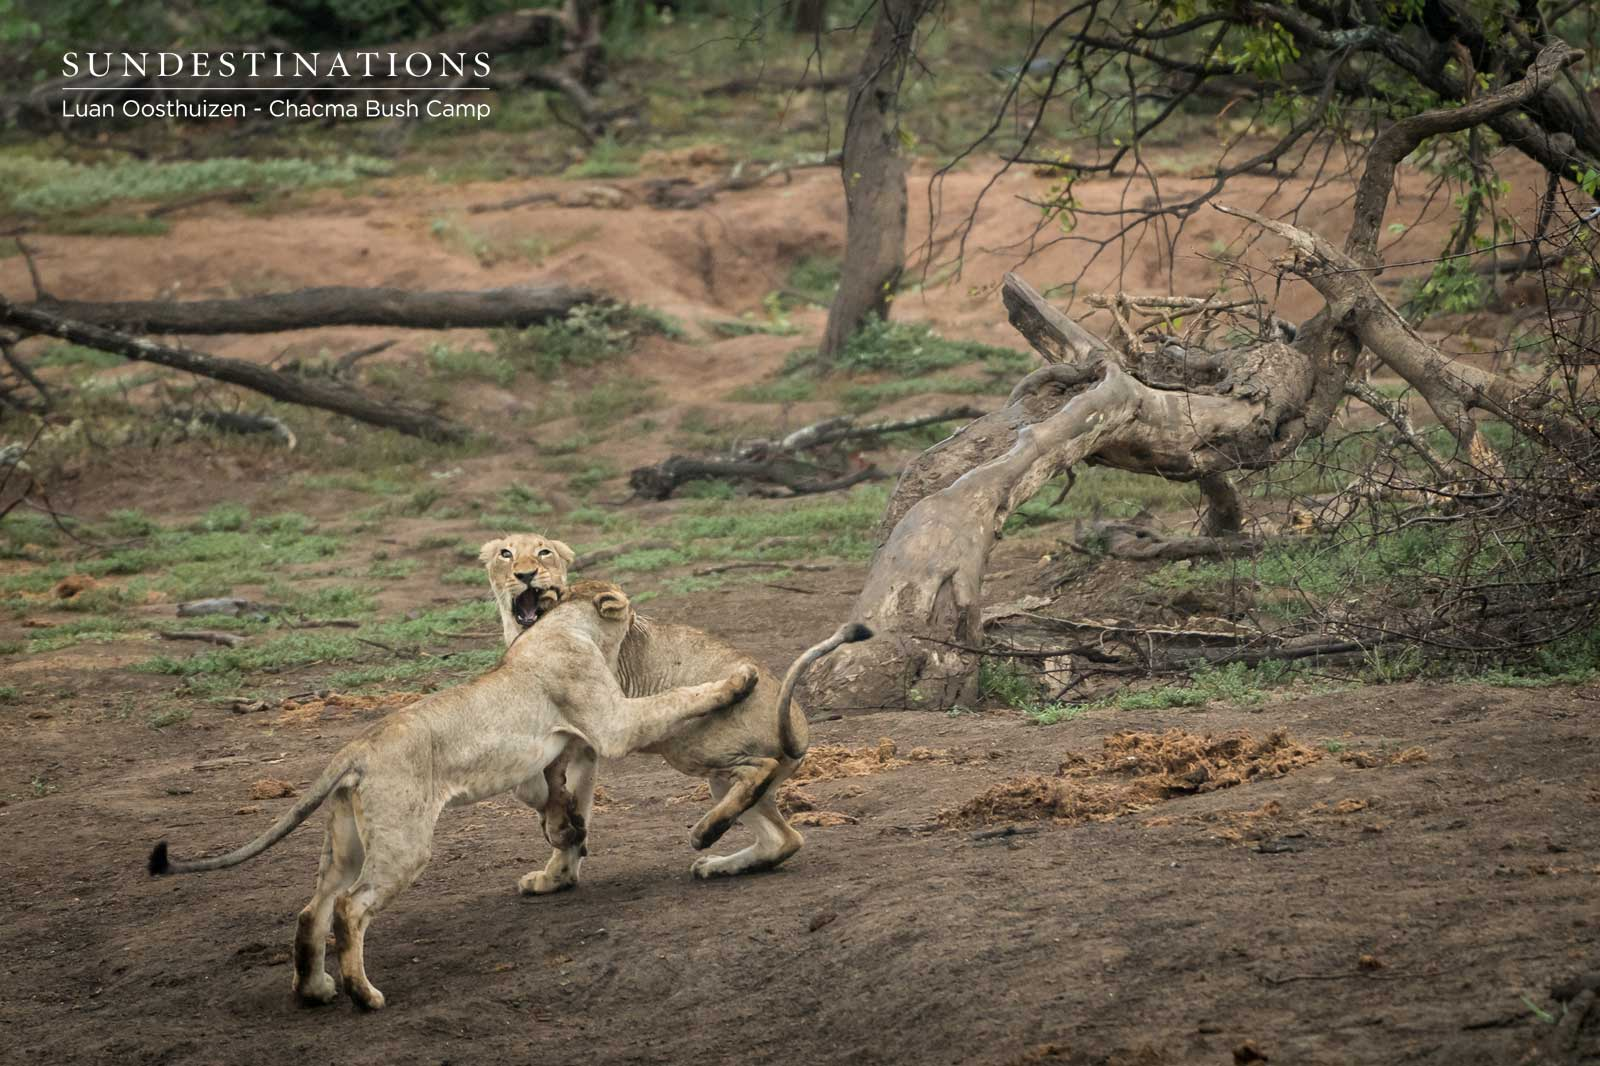 Lions at Chacma Play Fight